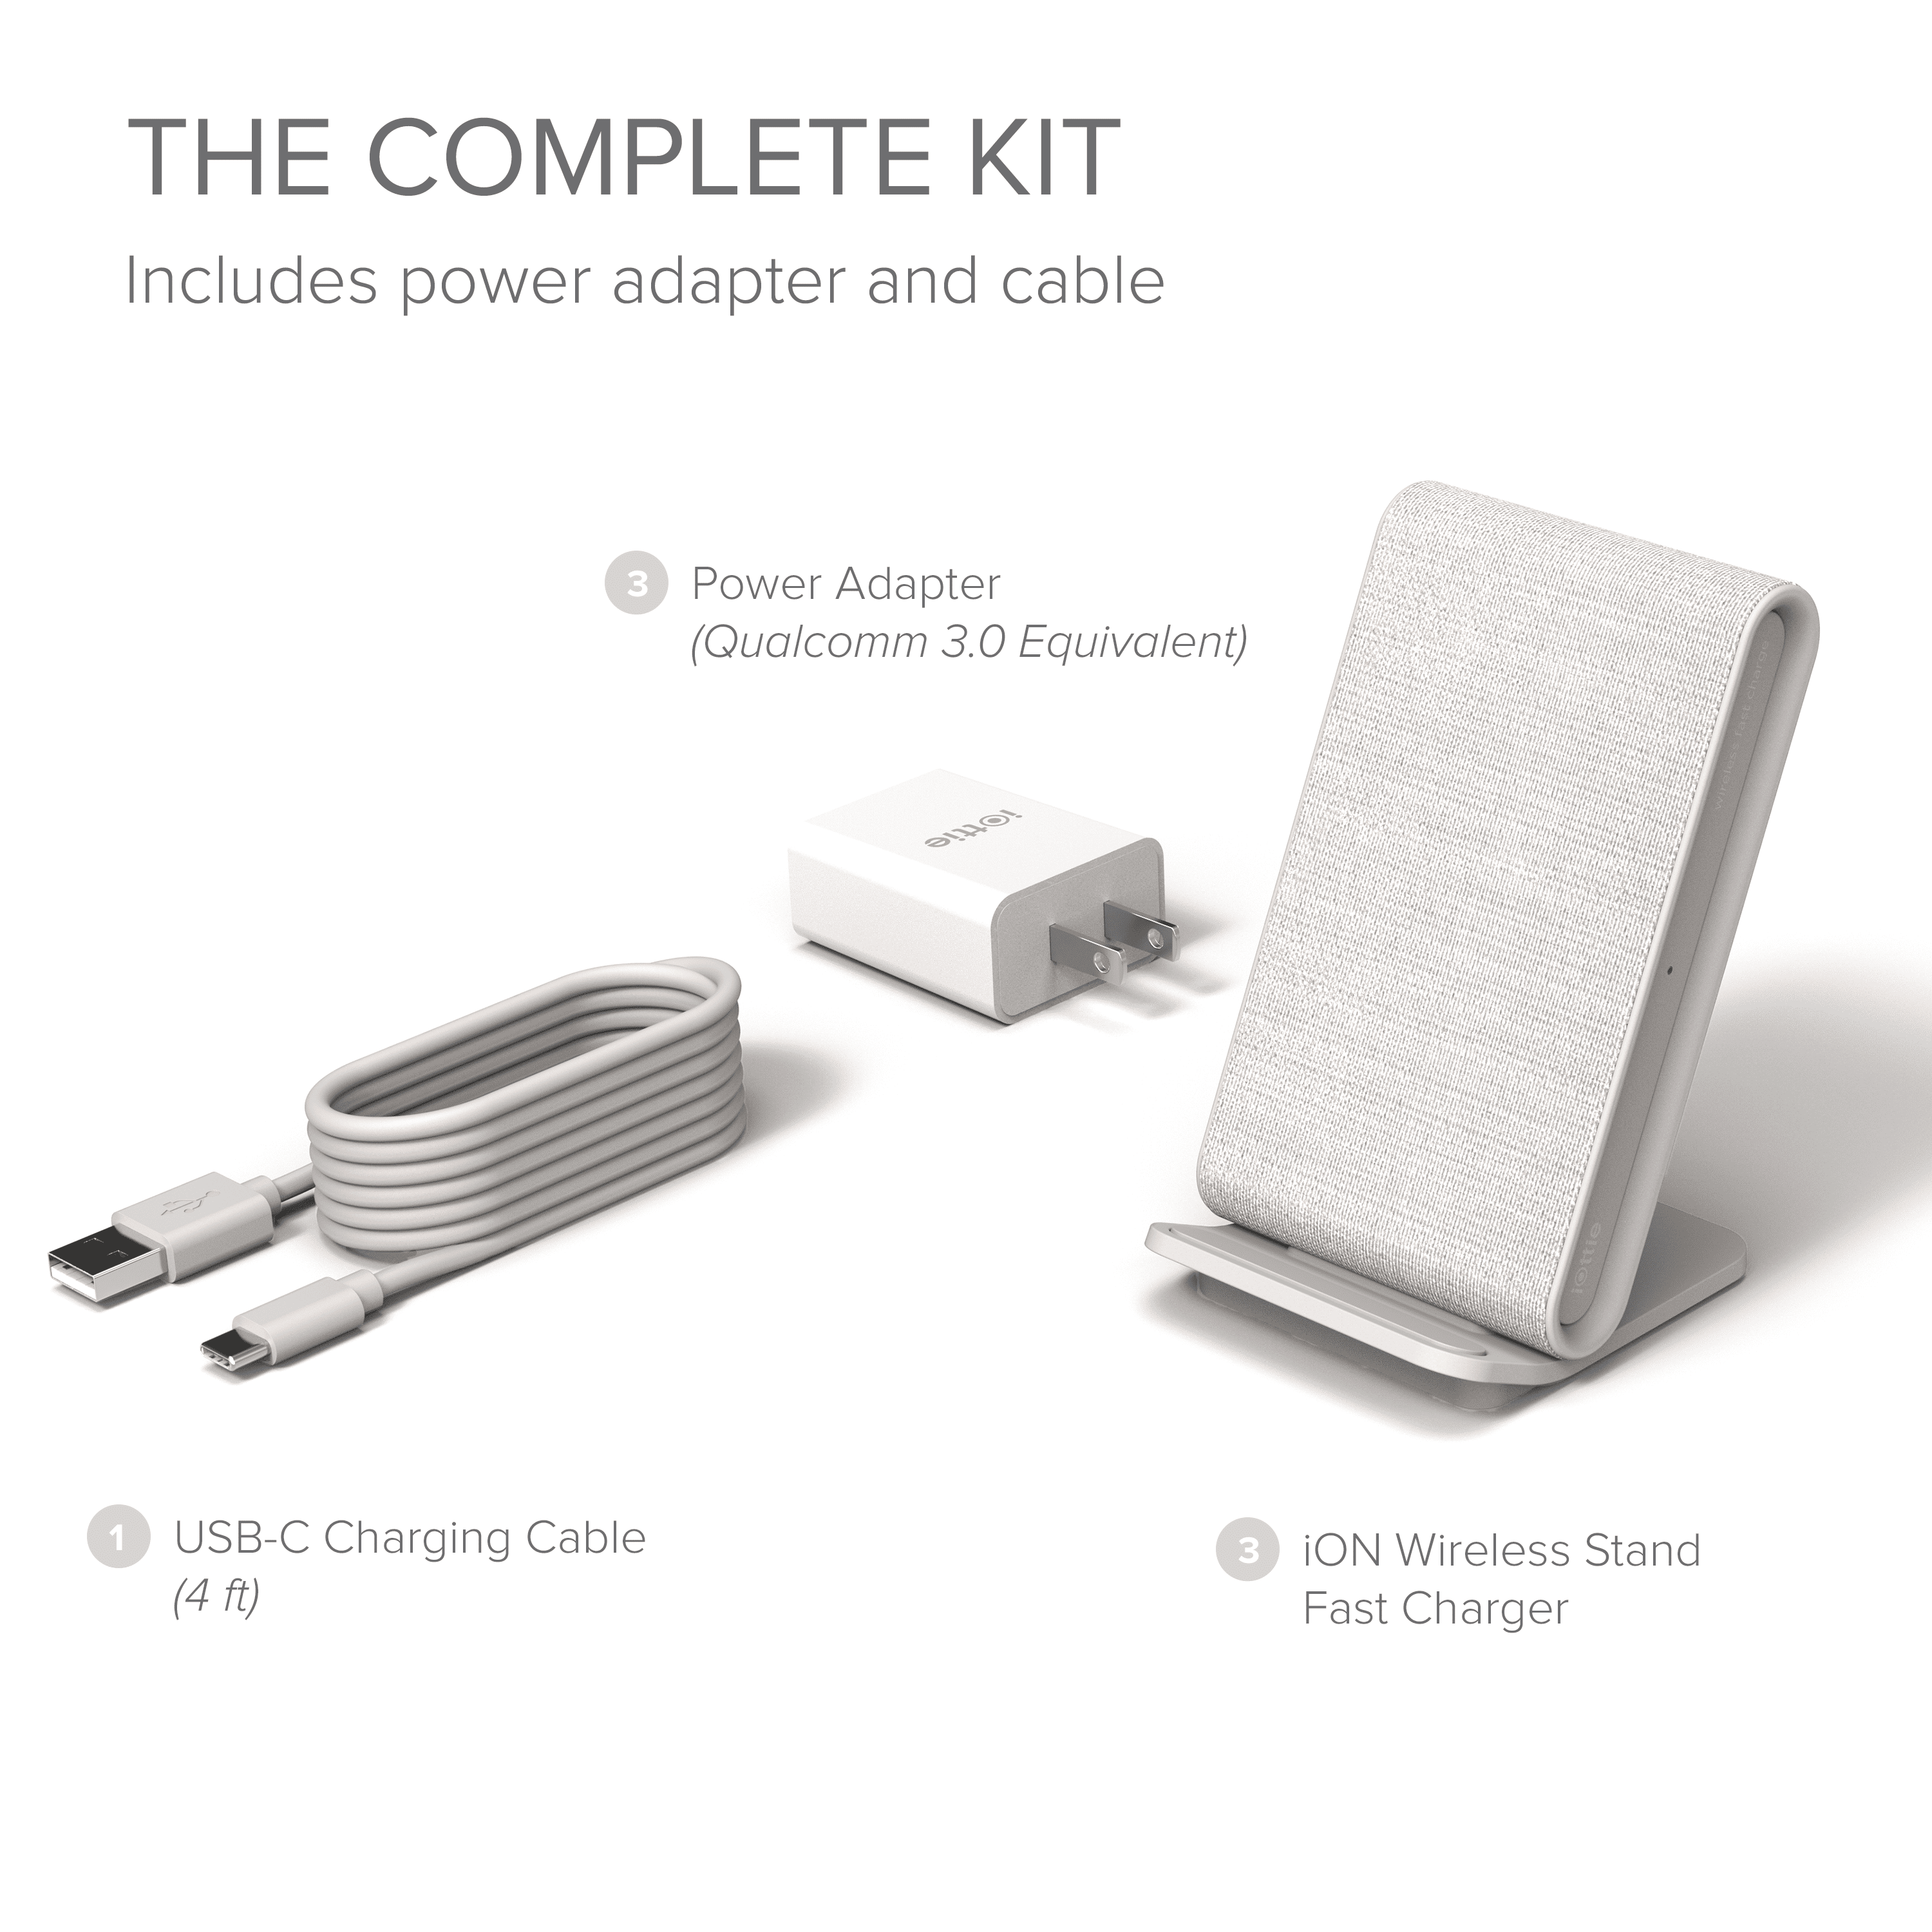 Qi-Certified Charger 7.5W for iPhone Xs Max R 8 Plus 10W for Samsung S9 Note 9 Ash iOttie iON Wireless Fast Charging Stand Includes USB C Cable /& AC Adapter